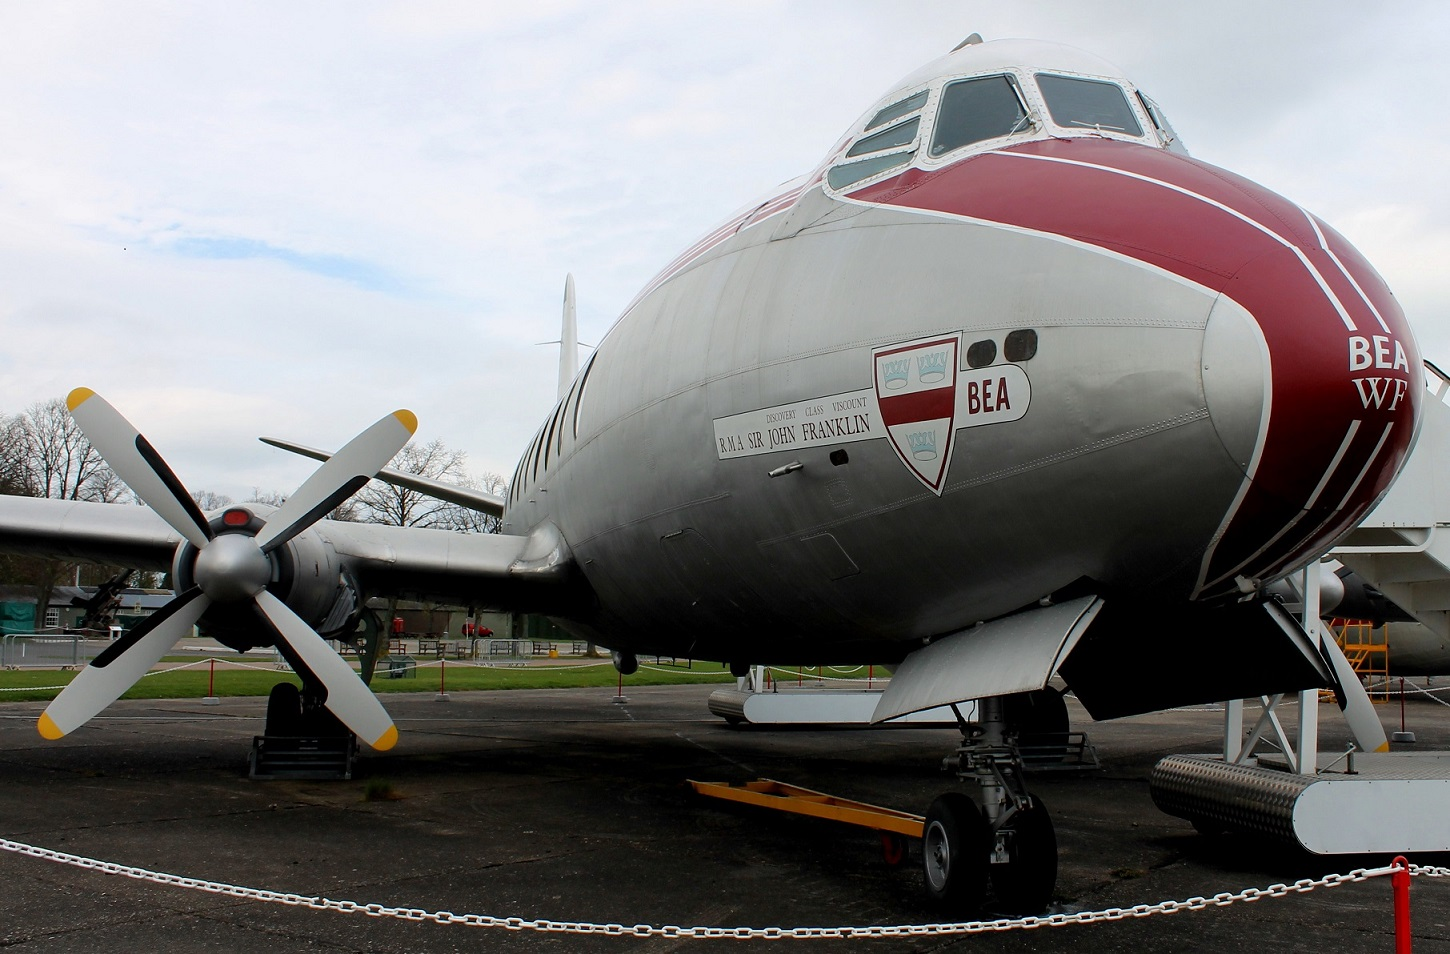 Another view of the Viscount